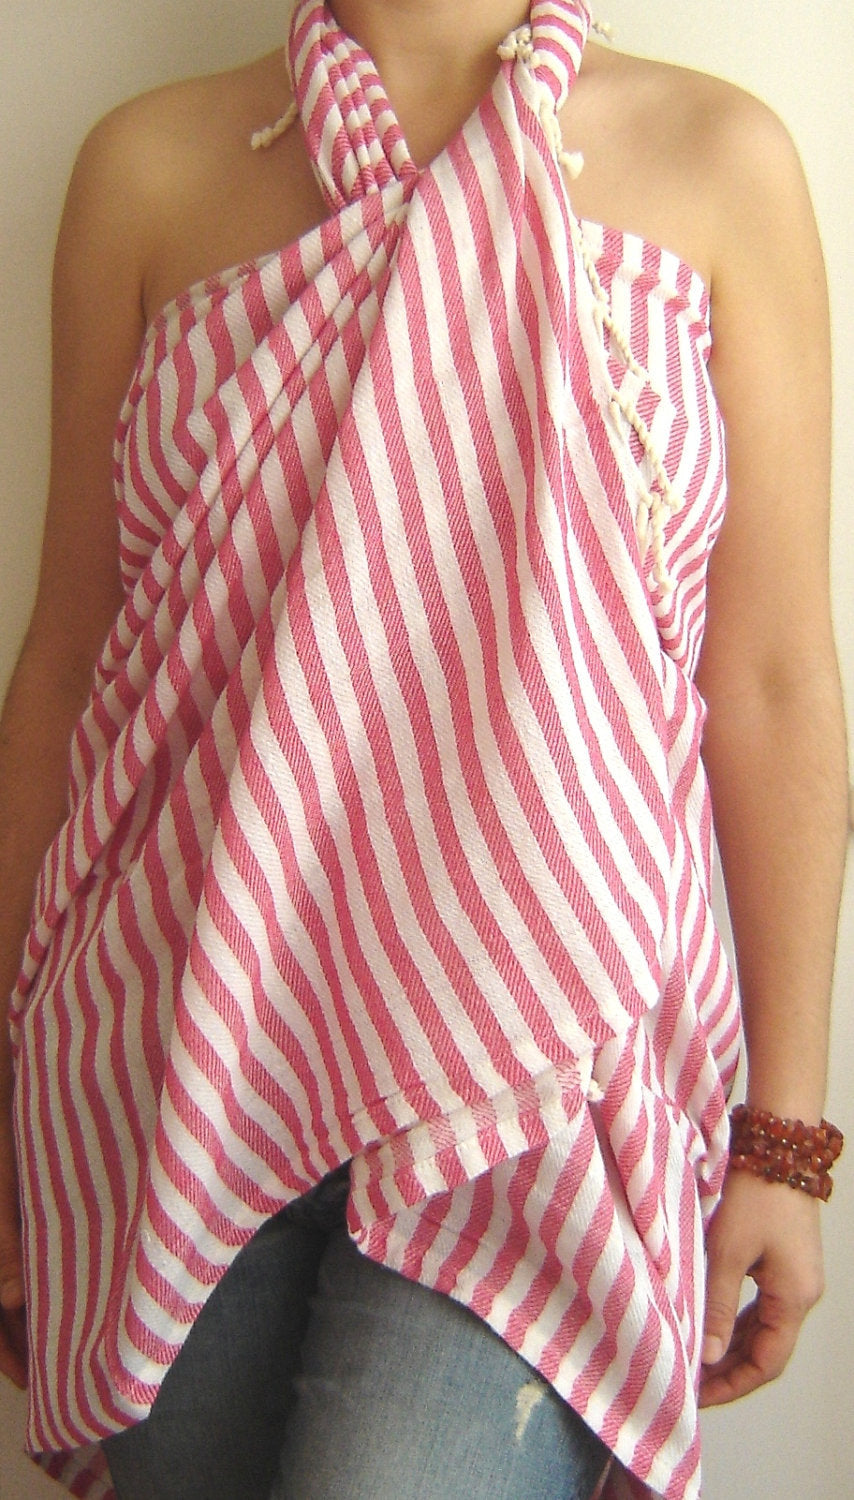 Hot Pink Turkish Towel, Peshtemal, Bath, Beach, Spa Towel